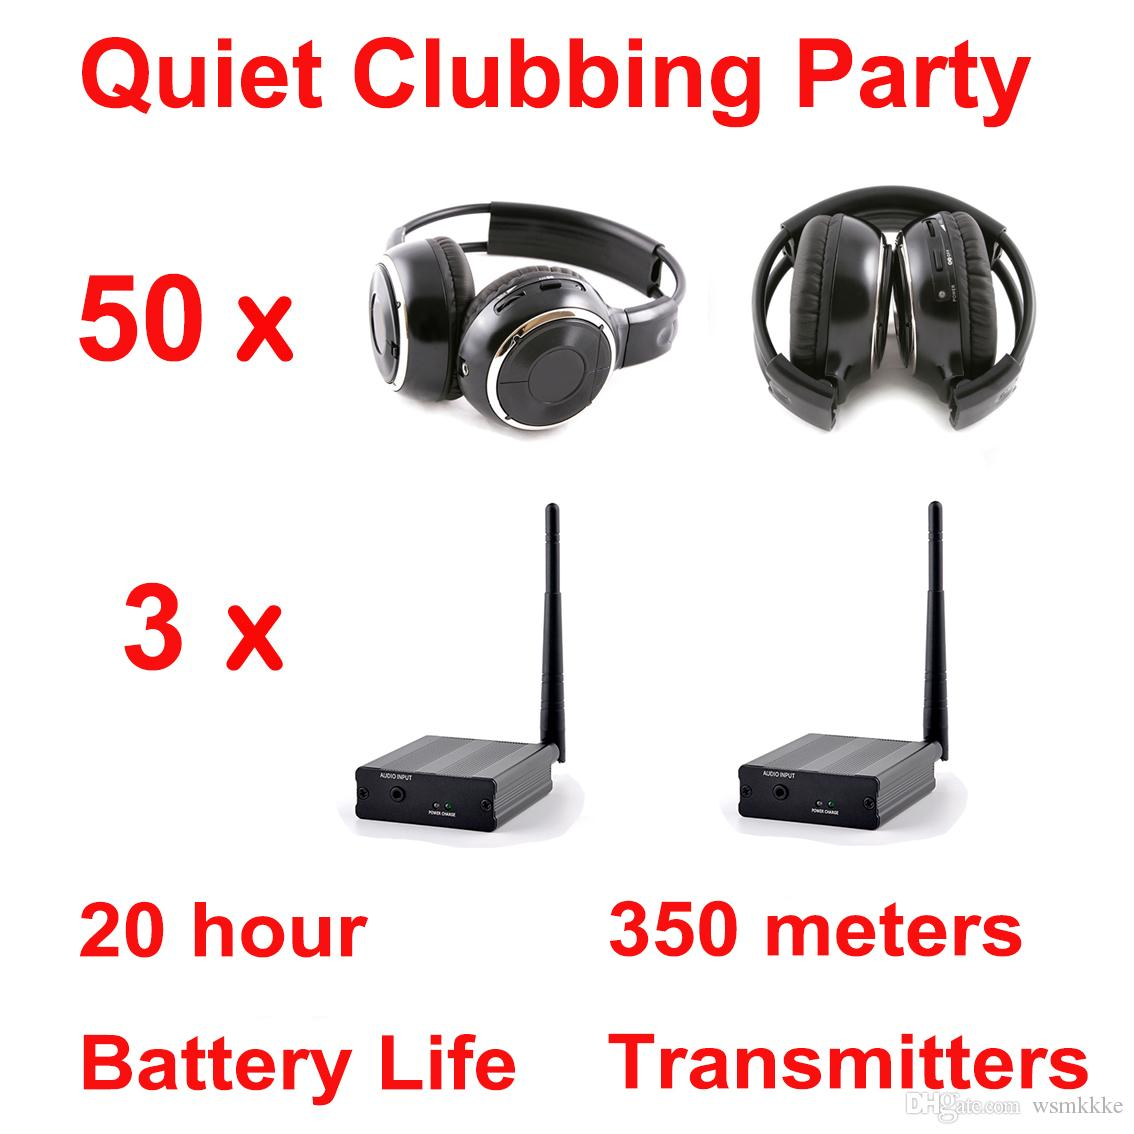 Universal 500m Silent Disco complete system black folding wireless headphones - Quiet Clubbing Party Bundle (50 Headphones + 3 Transmitters)